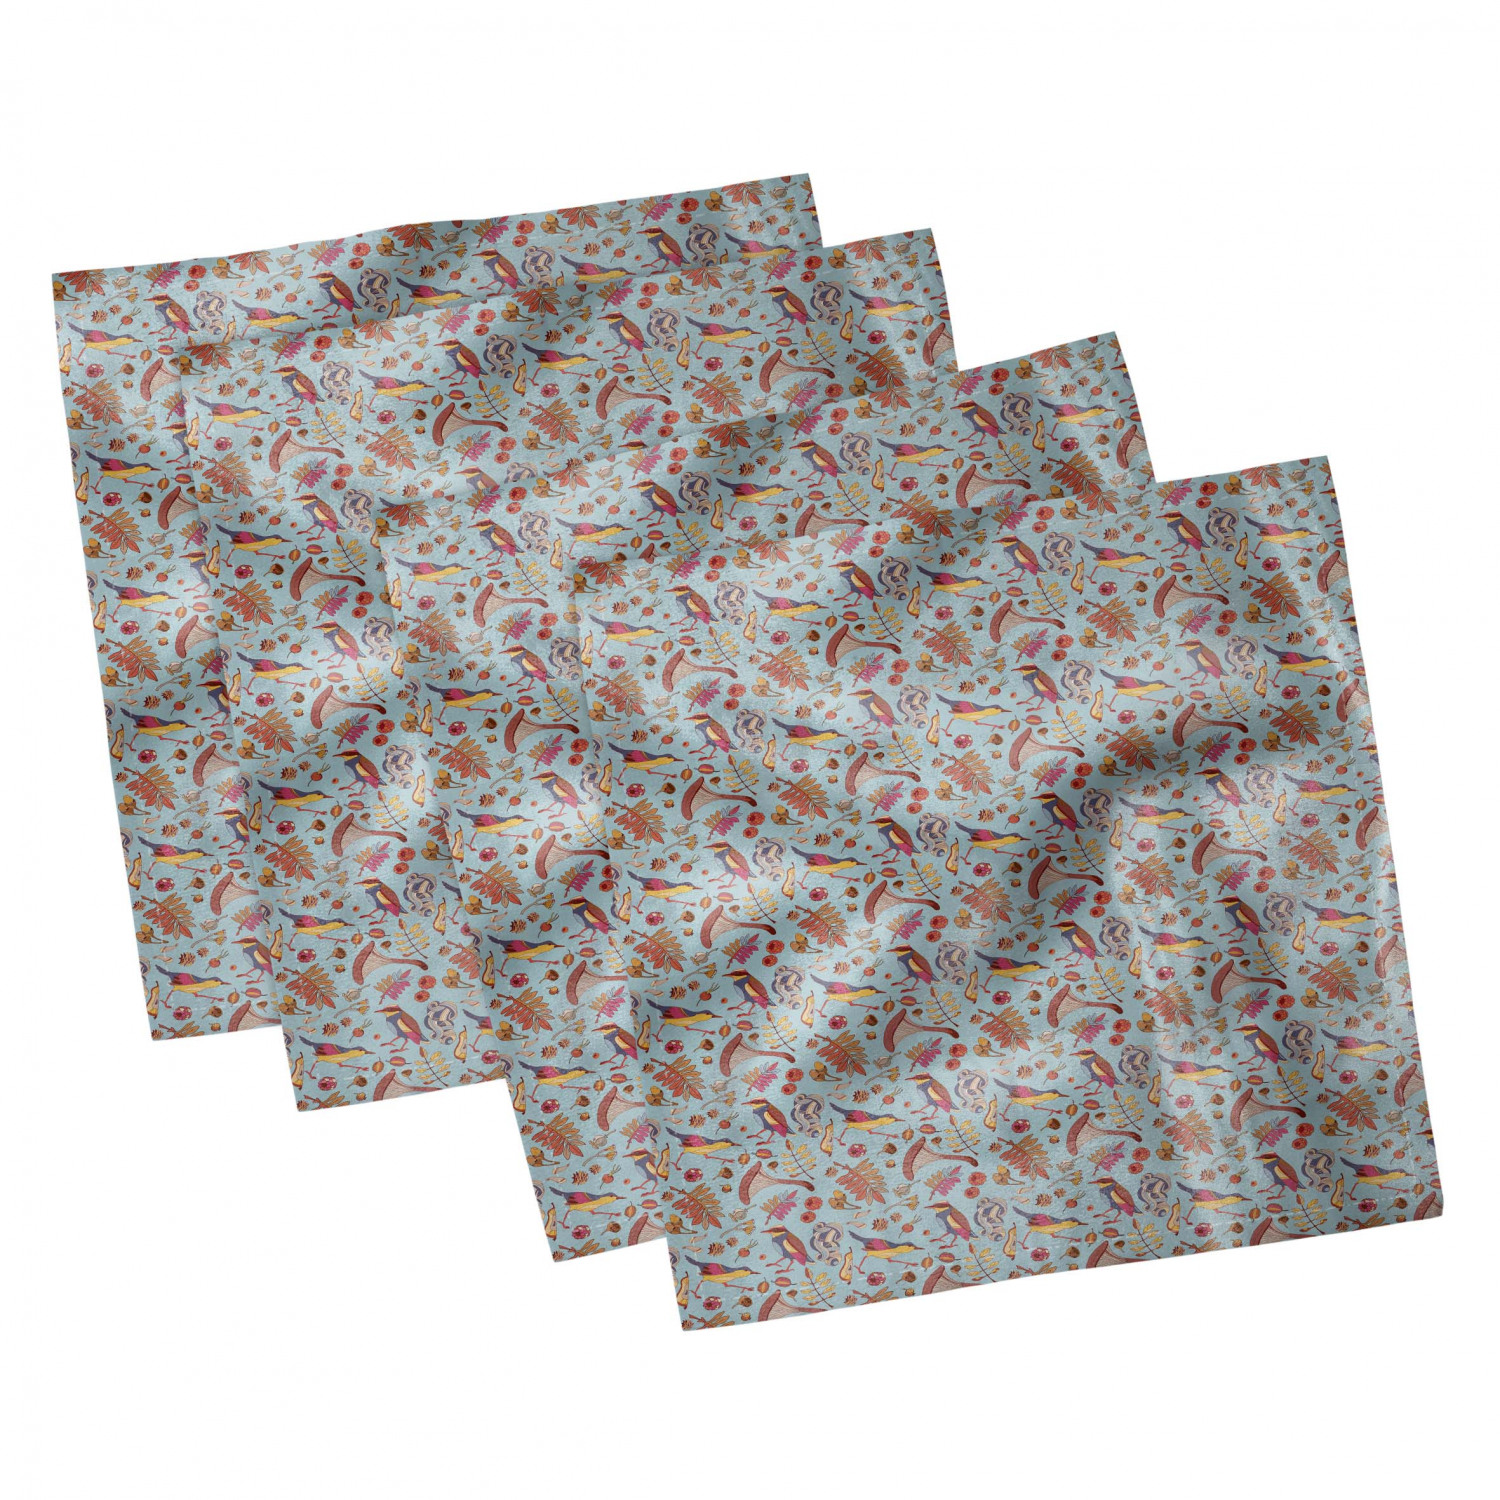 thumbnail 15 - Ambesonne-Autumn-Fall-Decorative-Satin-Napkins-Set-of-4-Party-Dinner-Fabric